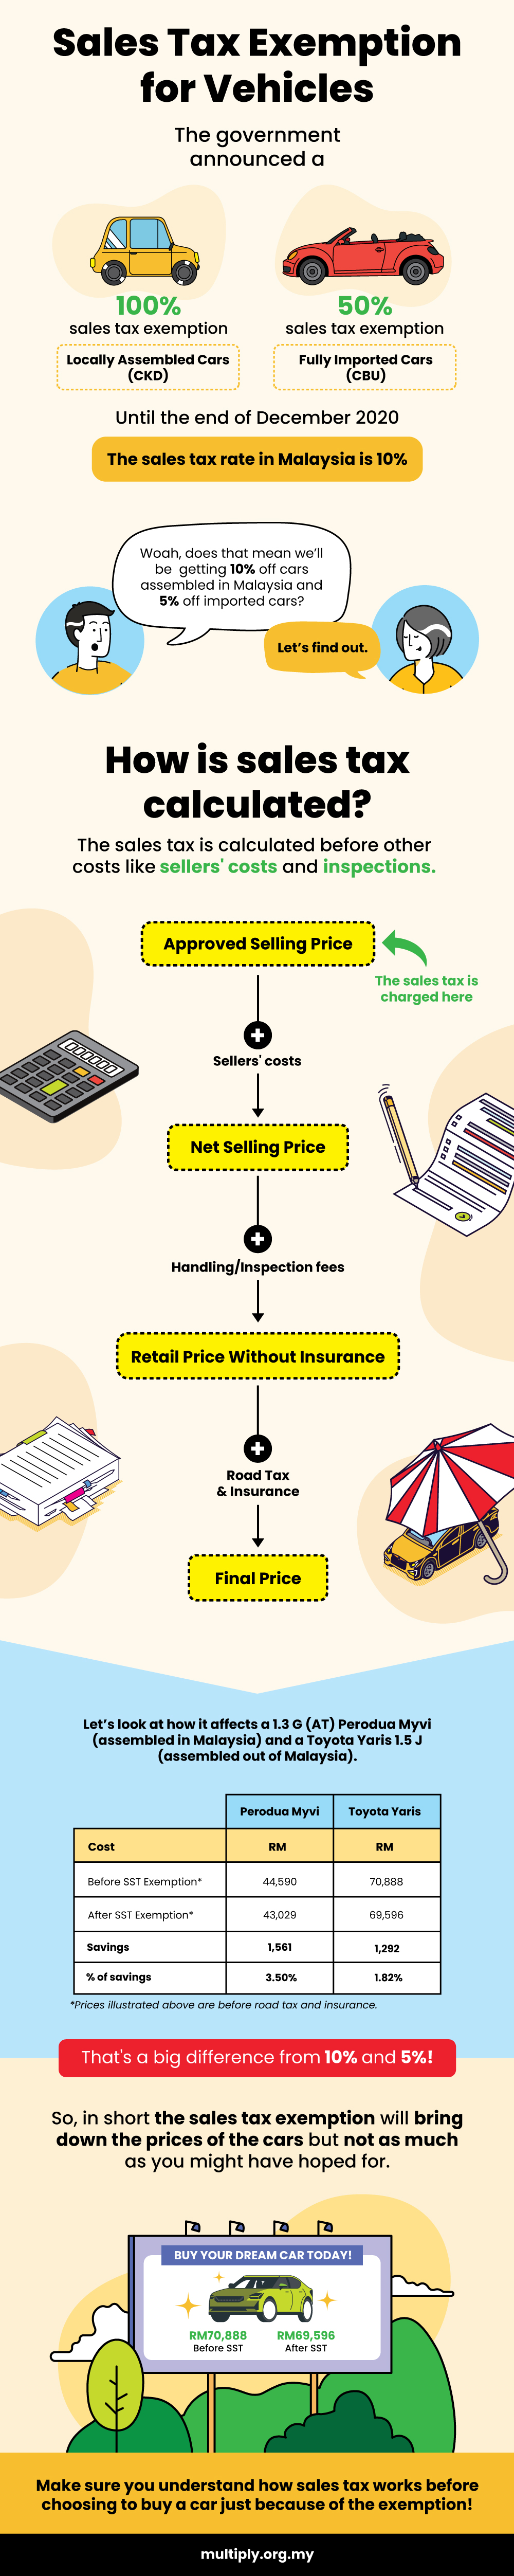 How is Sales Tax for Vehicles Calculated? 3 - Multiply - Buying a Vehicle